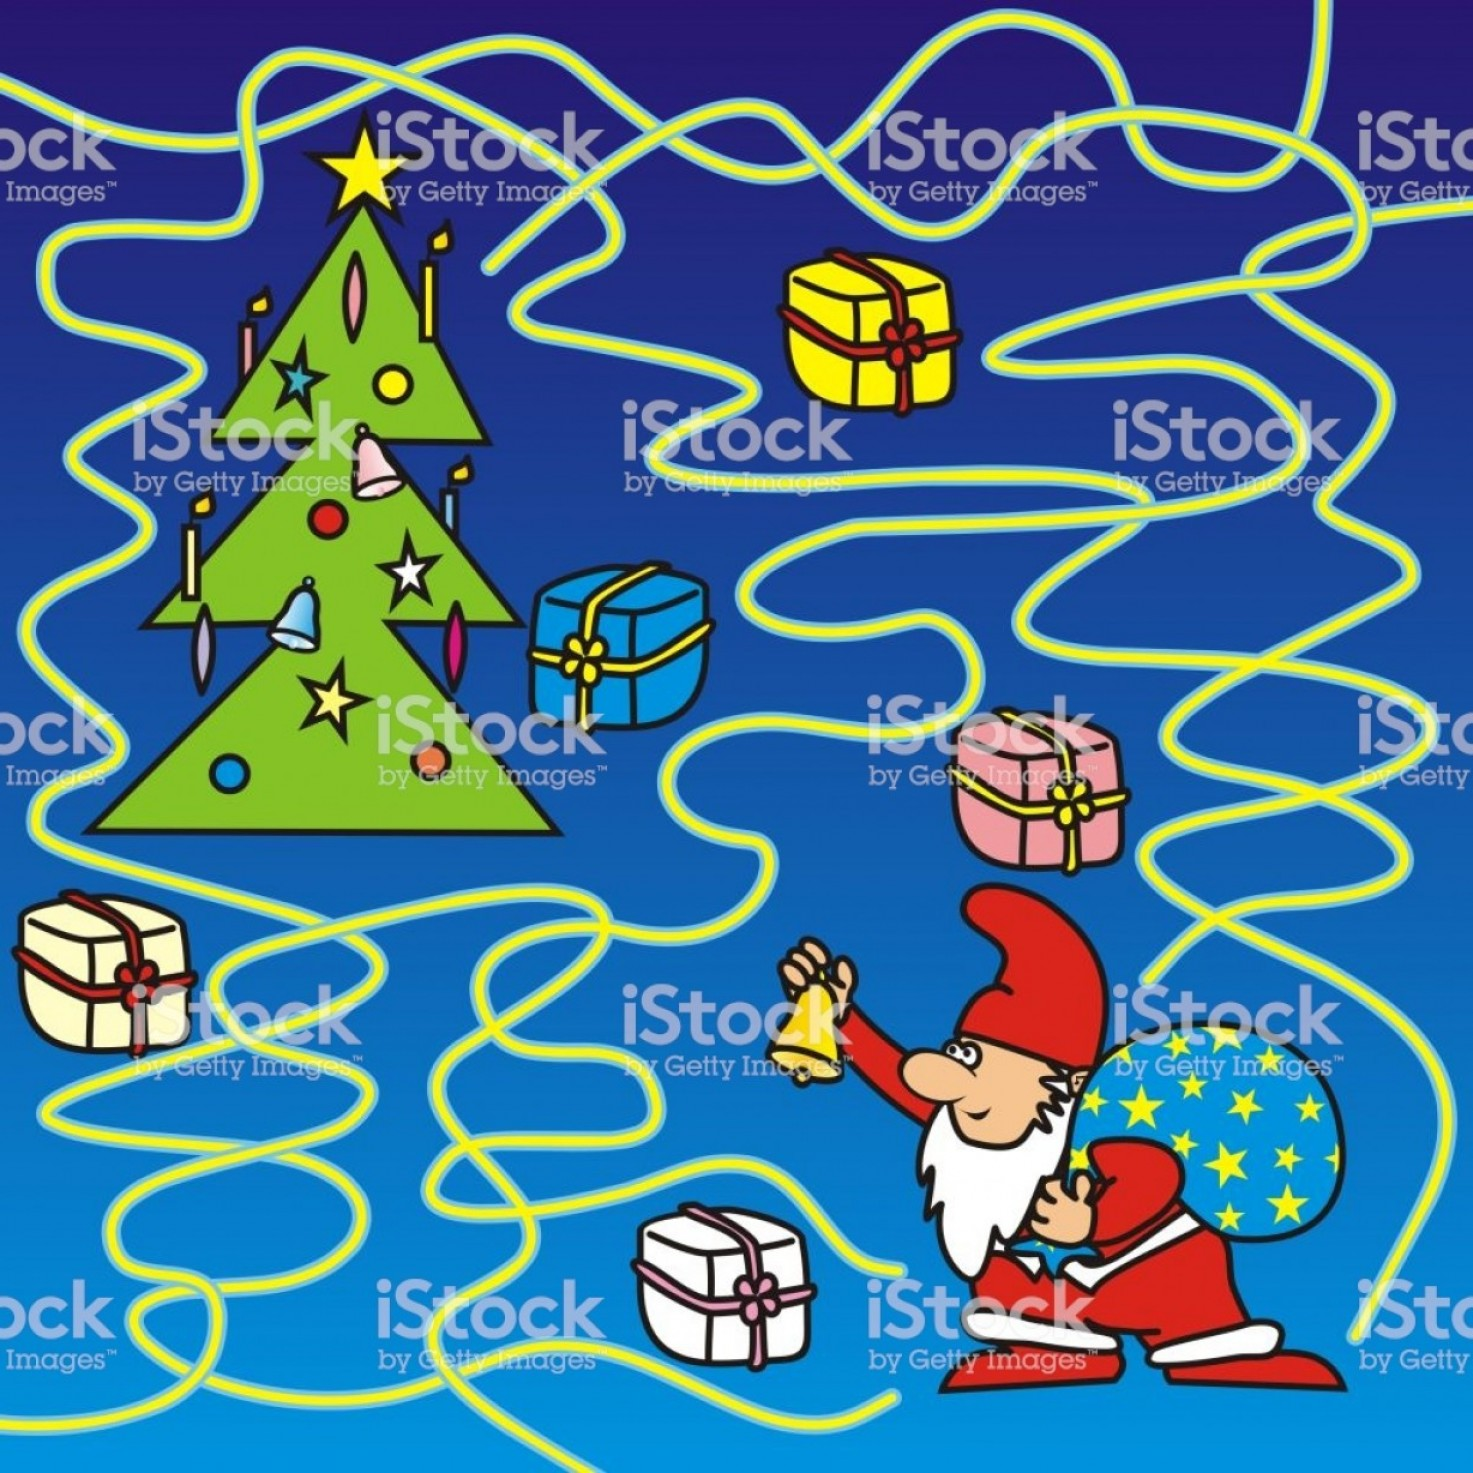 Vector-Based Christmas: Christmas Game For Kids Labyrinth Santa Claus Find Way To The Christmas Tree Gm